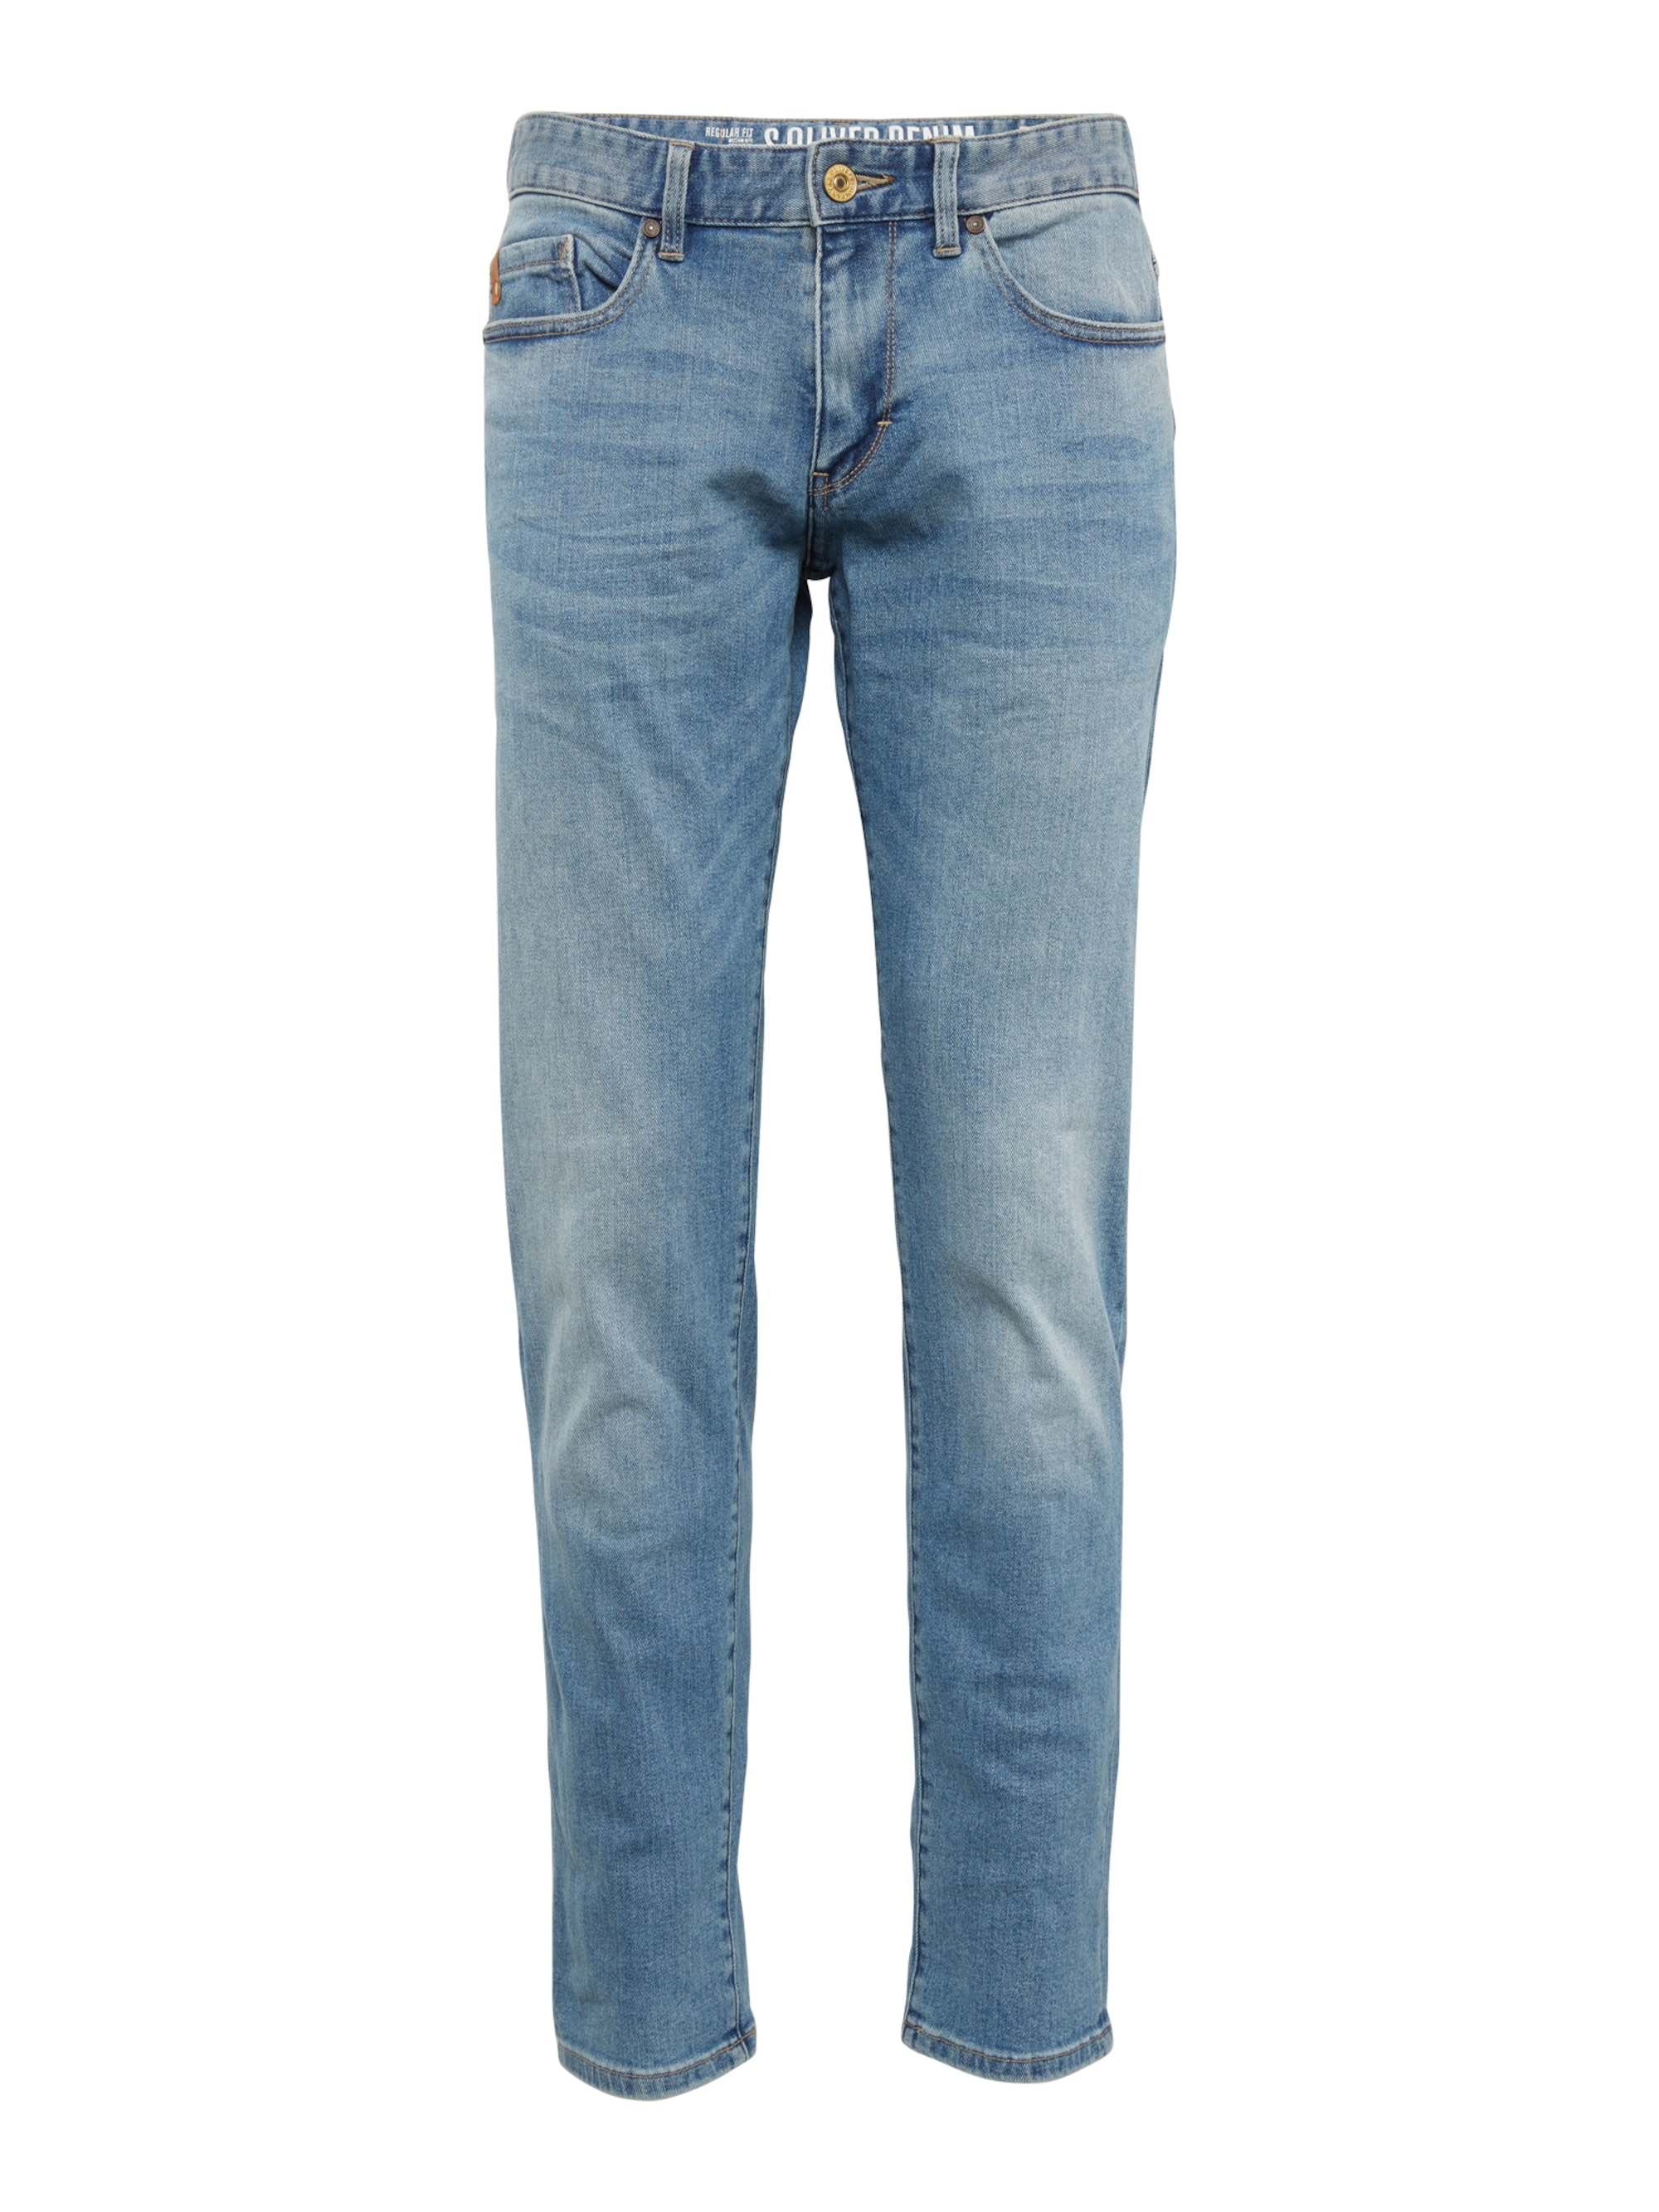 Jeans im Used-Style